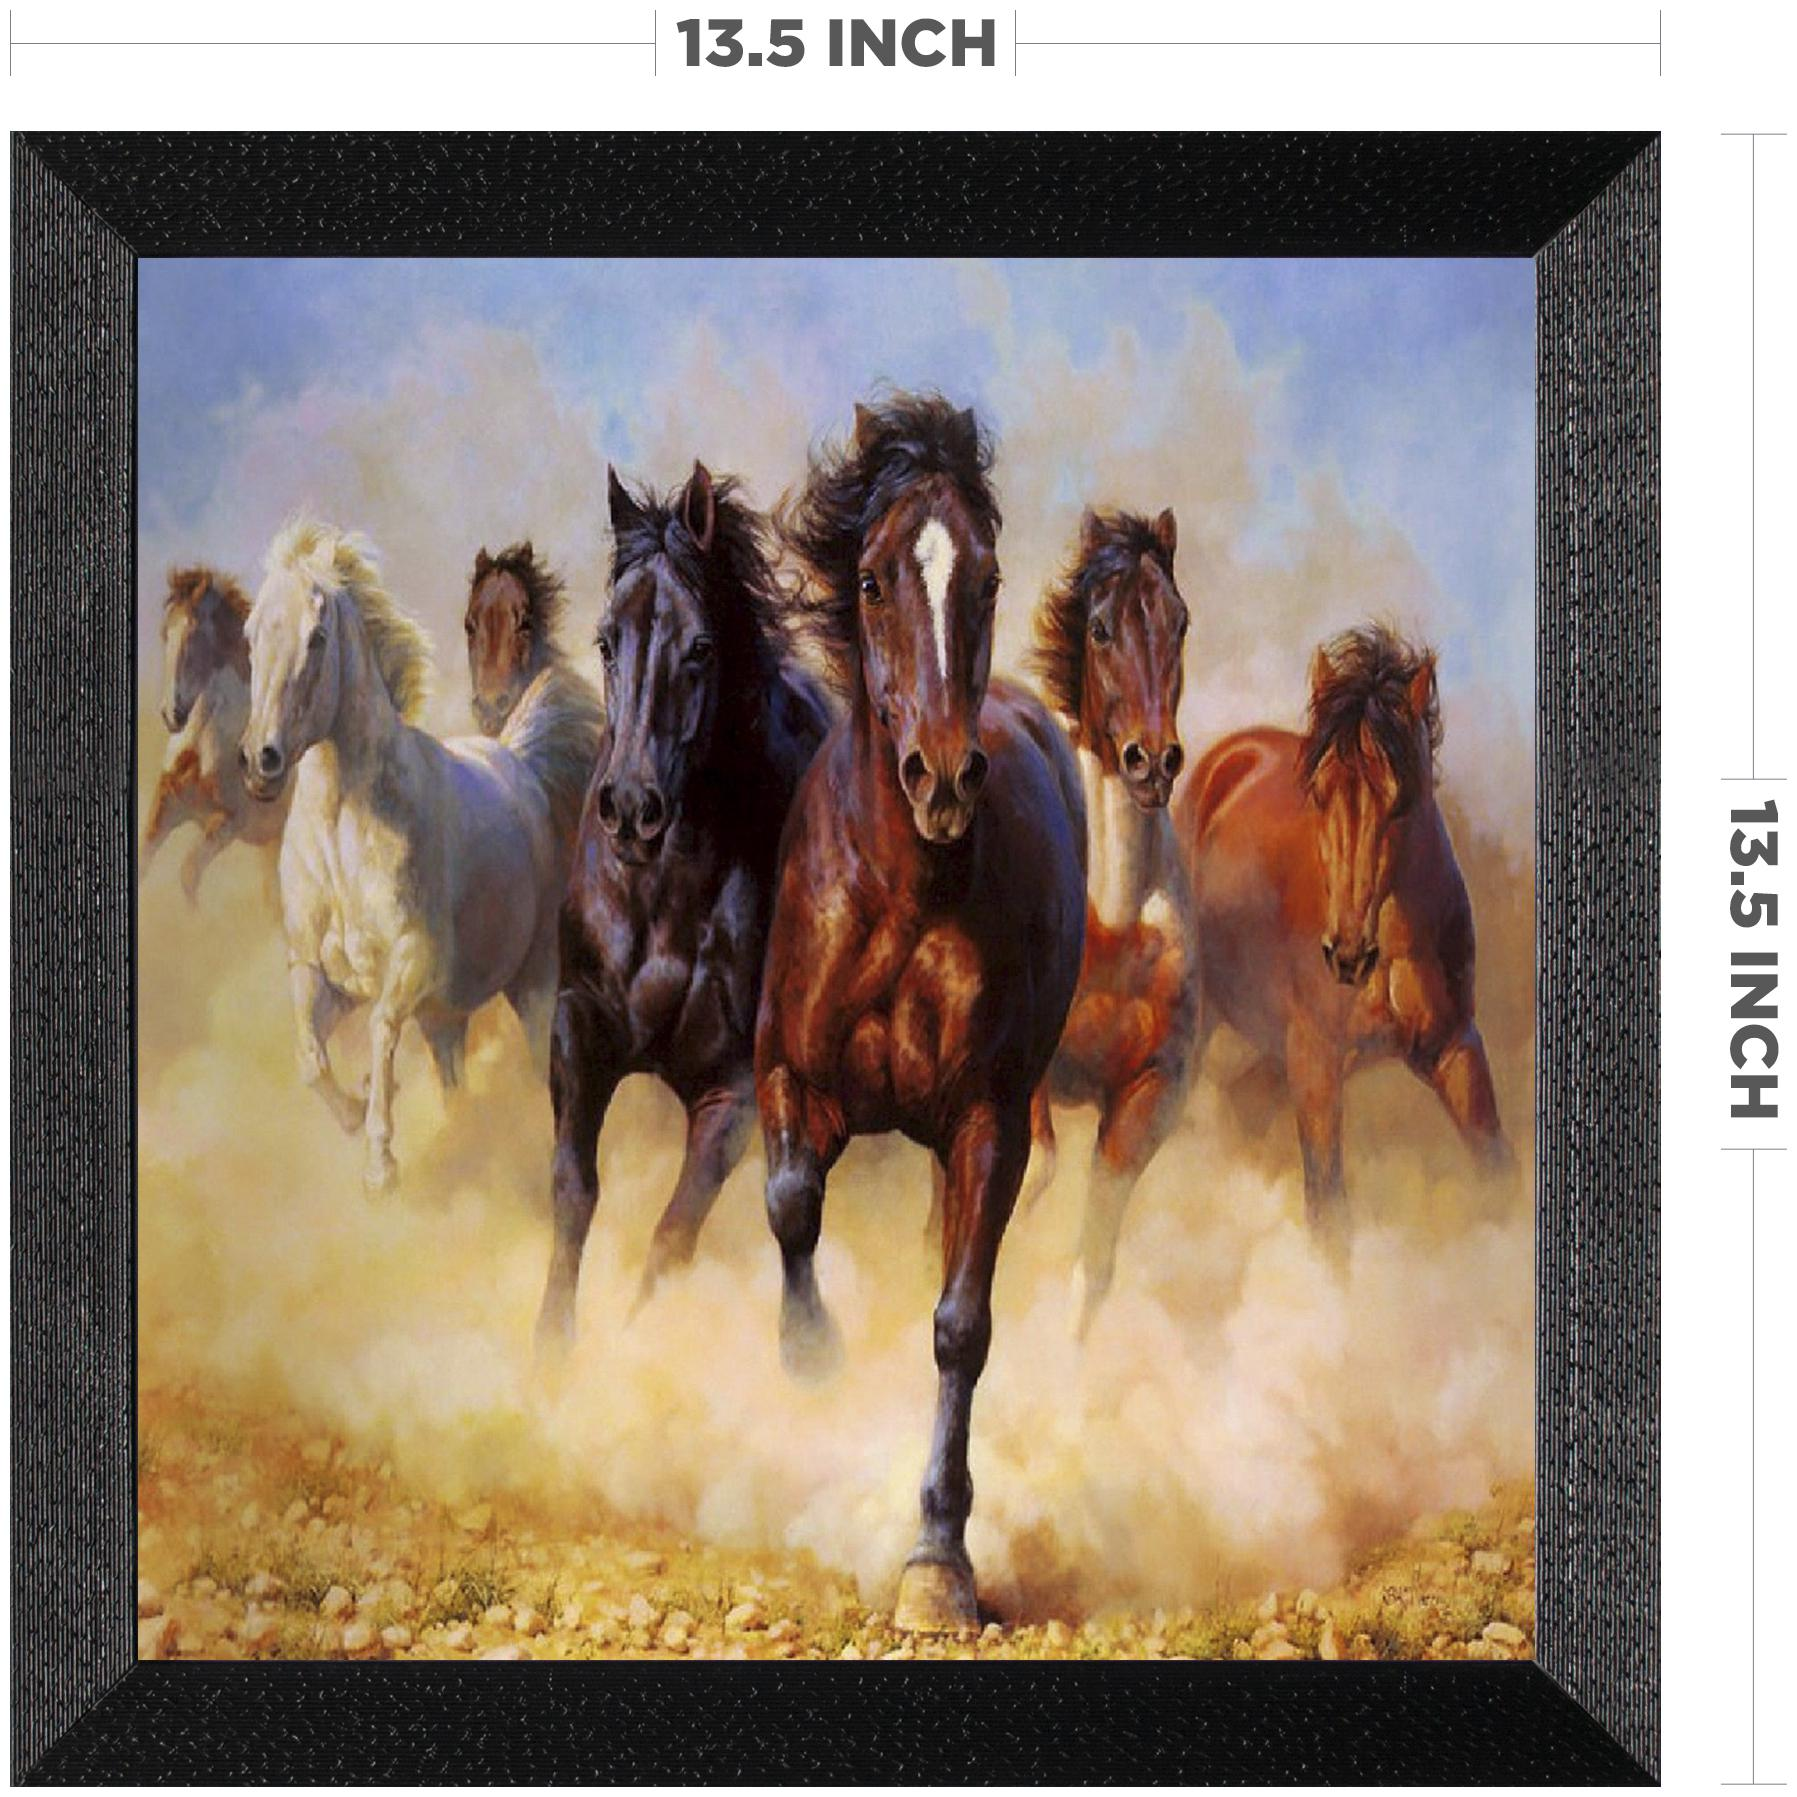 Buy Ritwika S Seven Horse Running Wall Art Matte Textured Frame Painting Online At Low Prices In India Paytmmall Com